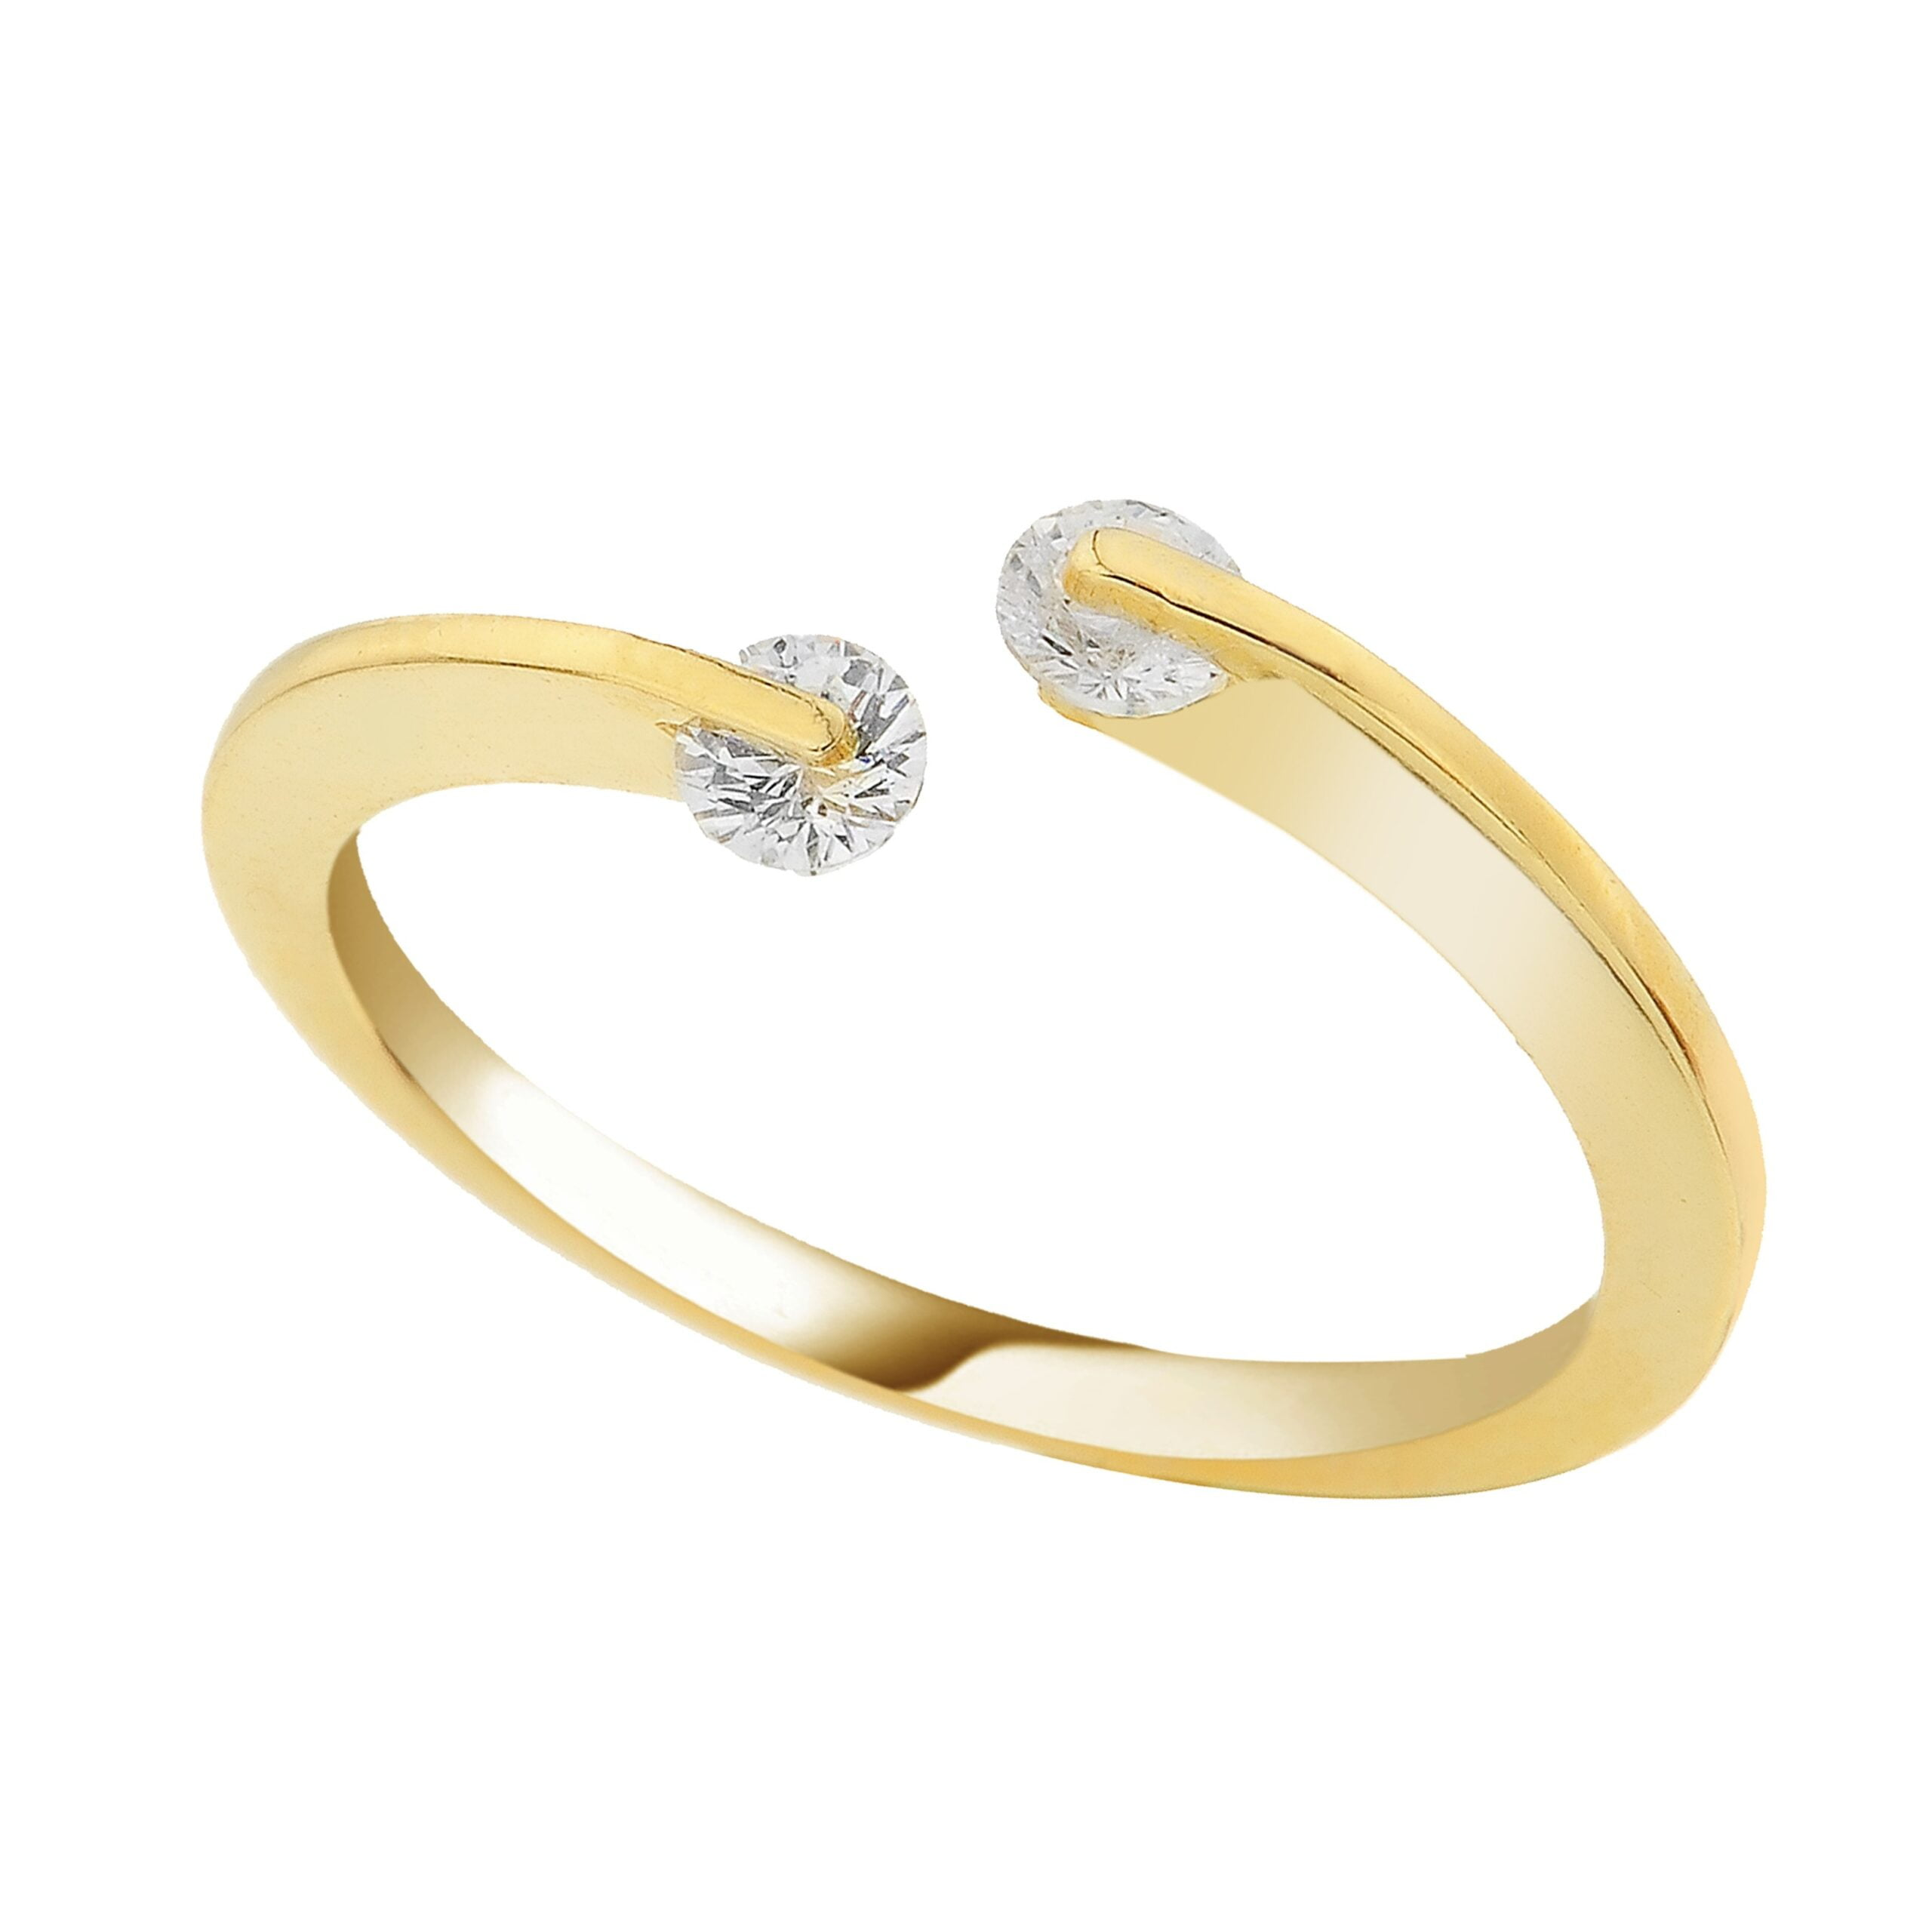 14K Real Solid Yellow Gold Open Cuff Ring with White Zirconia Stones for Women Xmas Christmas Birthday Gift Mother handmade jewelry